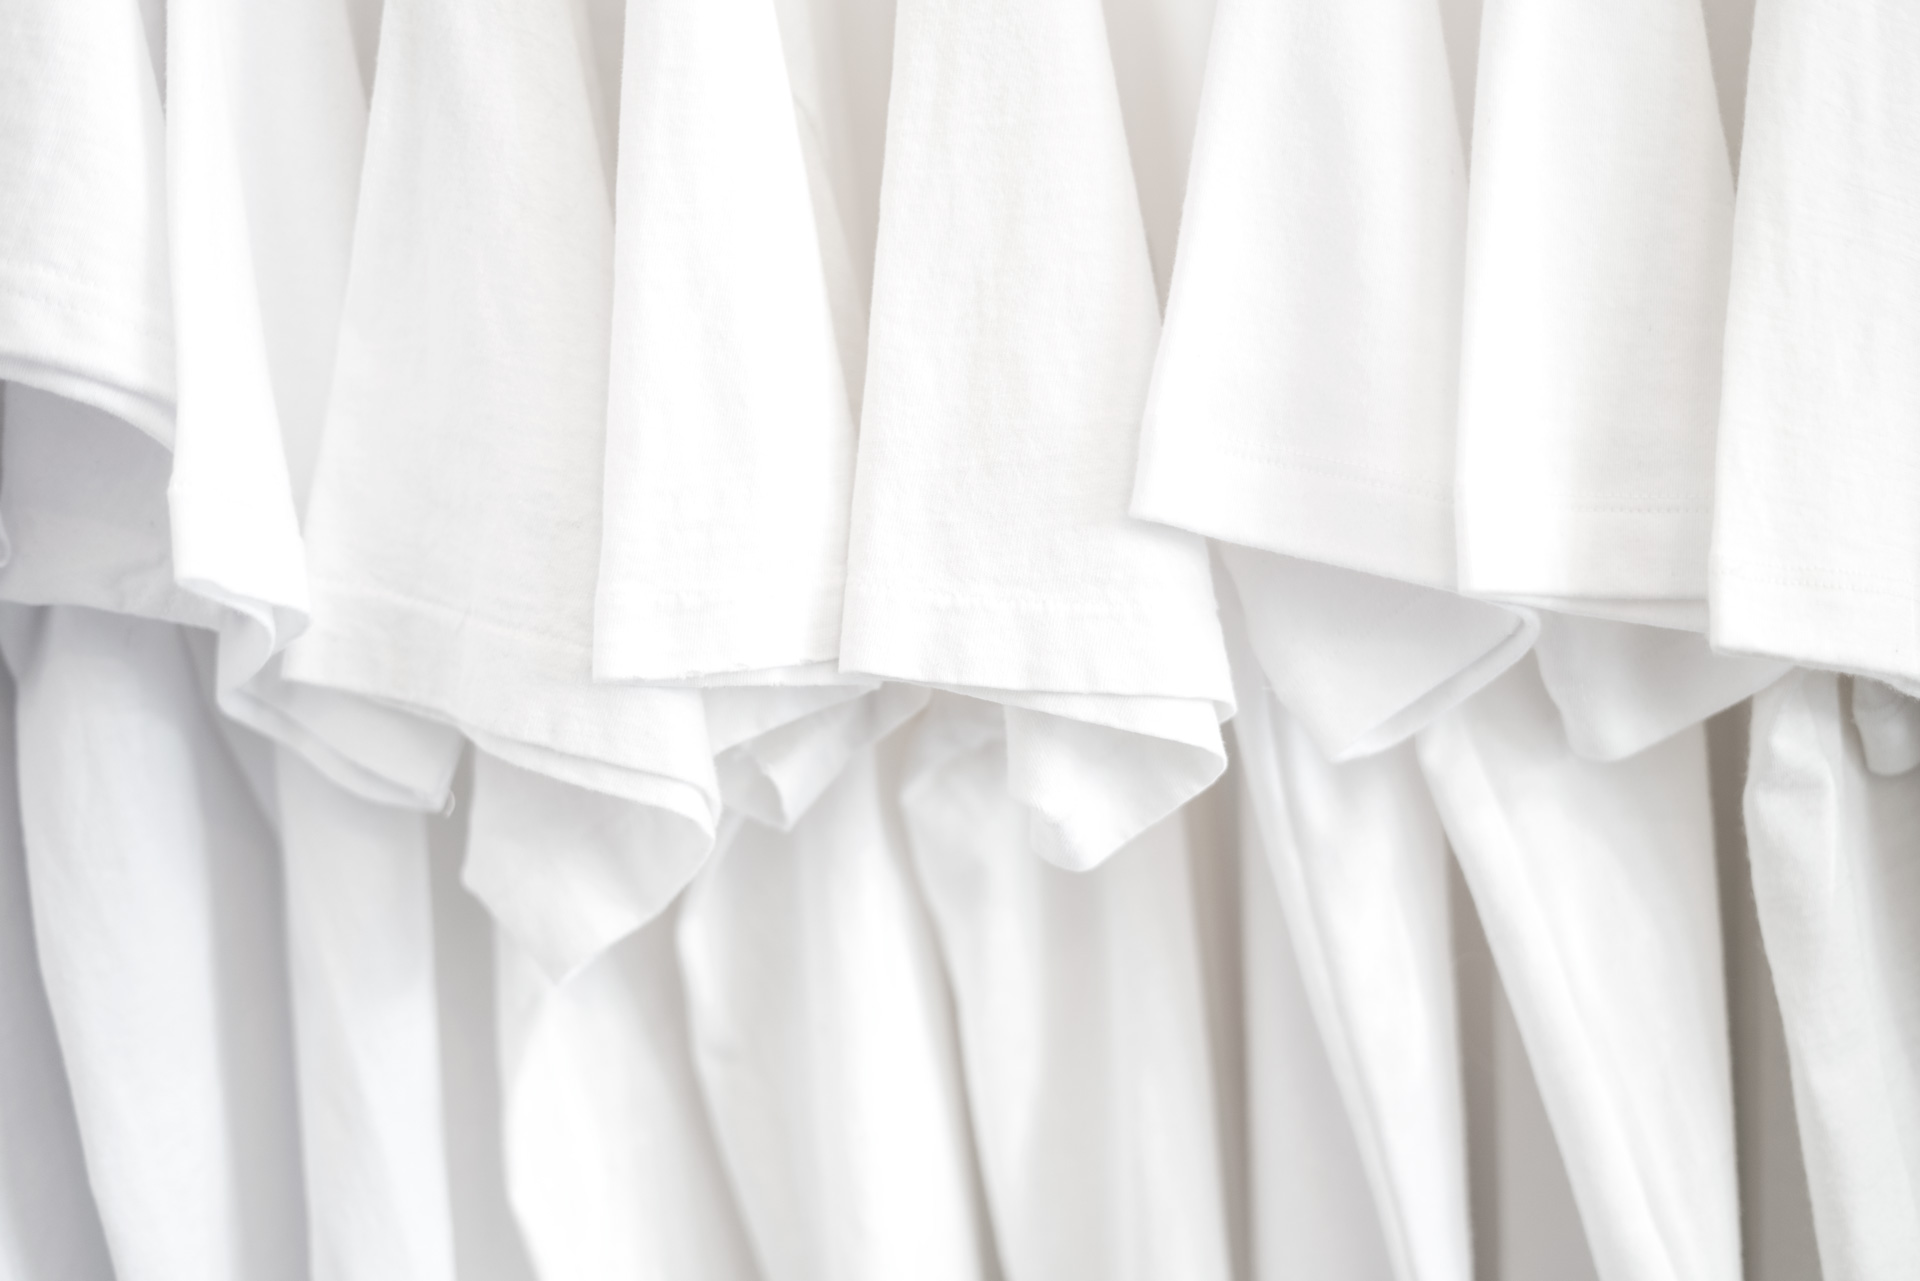 details, white, cotton, shoulder, tee, sustainable, garment, luxury